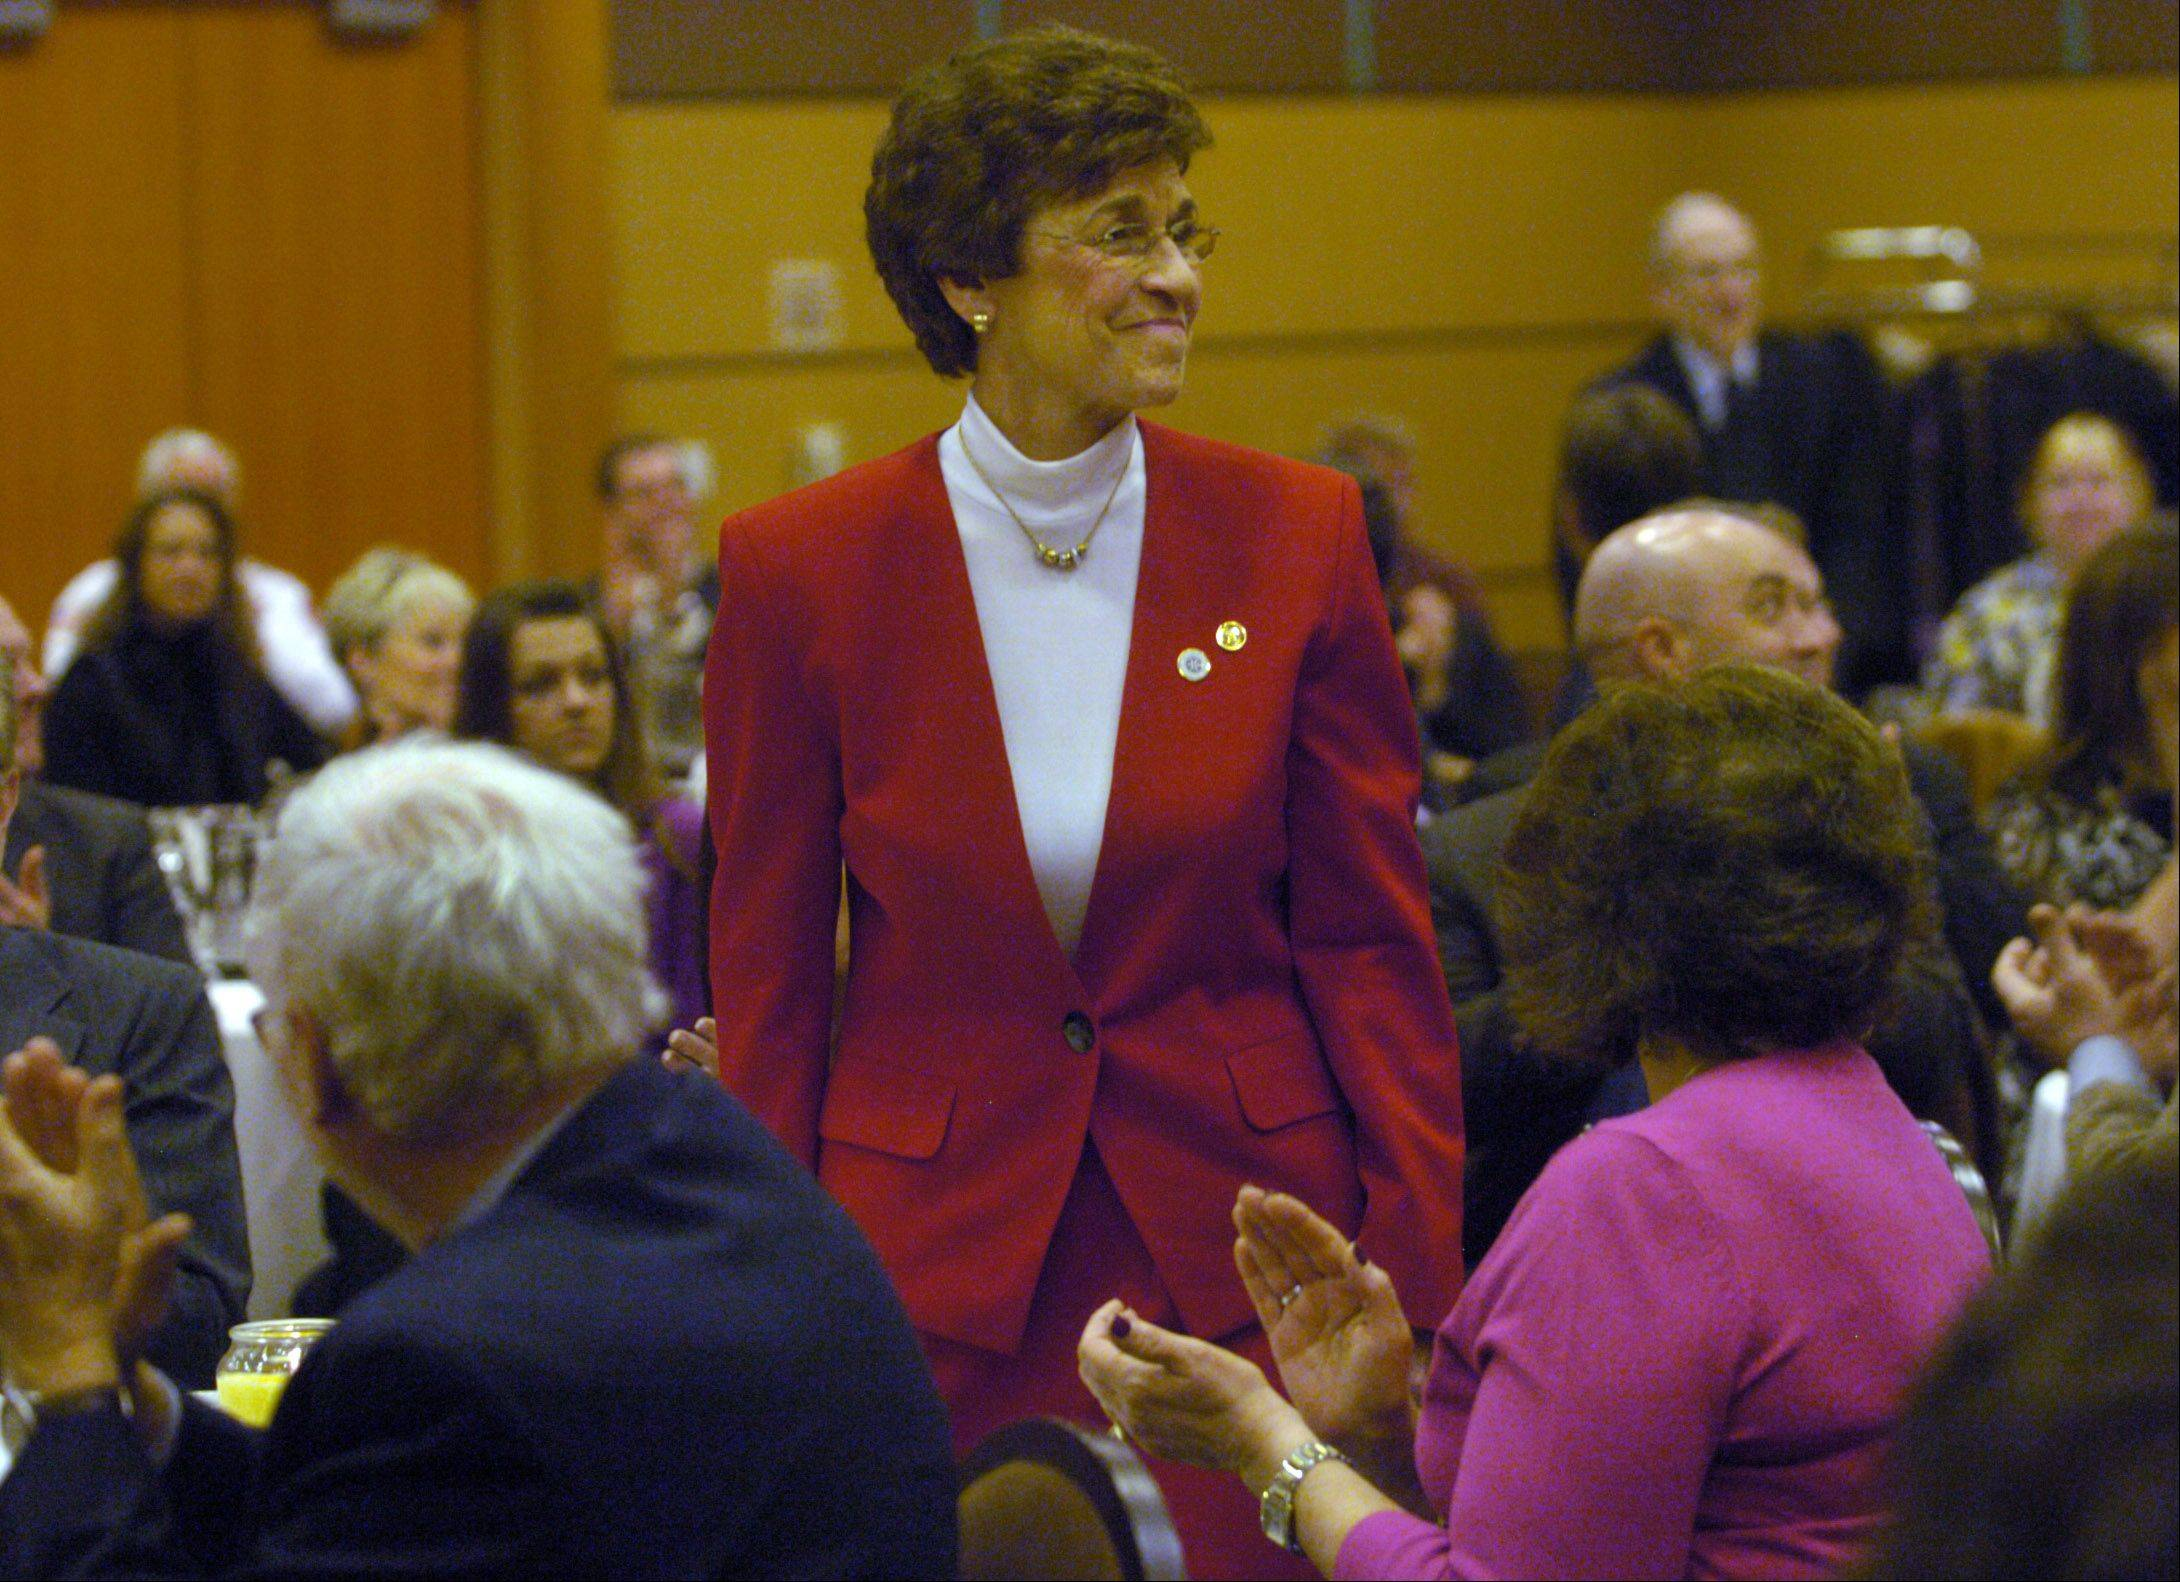 Arlene Mulder is retiring after 20 years leading Arlington Heights, creating one of the more sought-after mayoral openings in the suburbs.